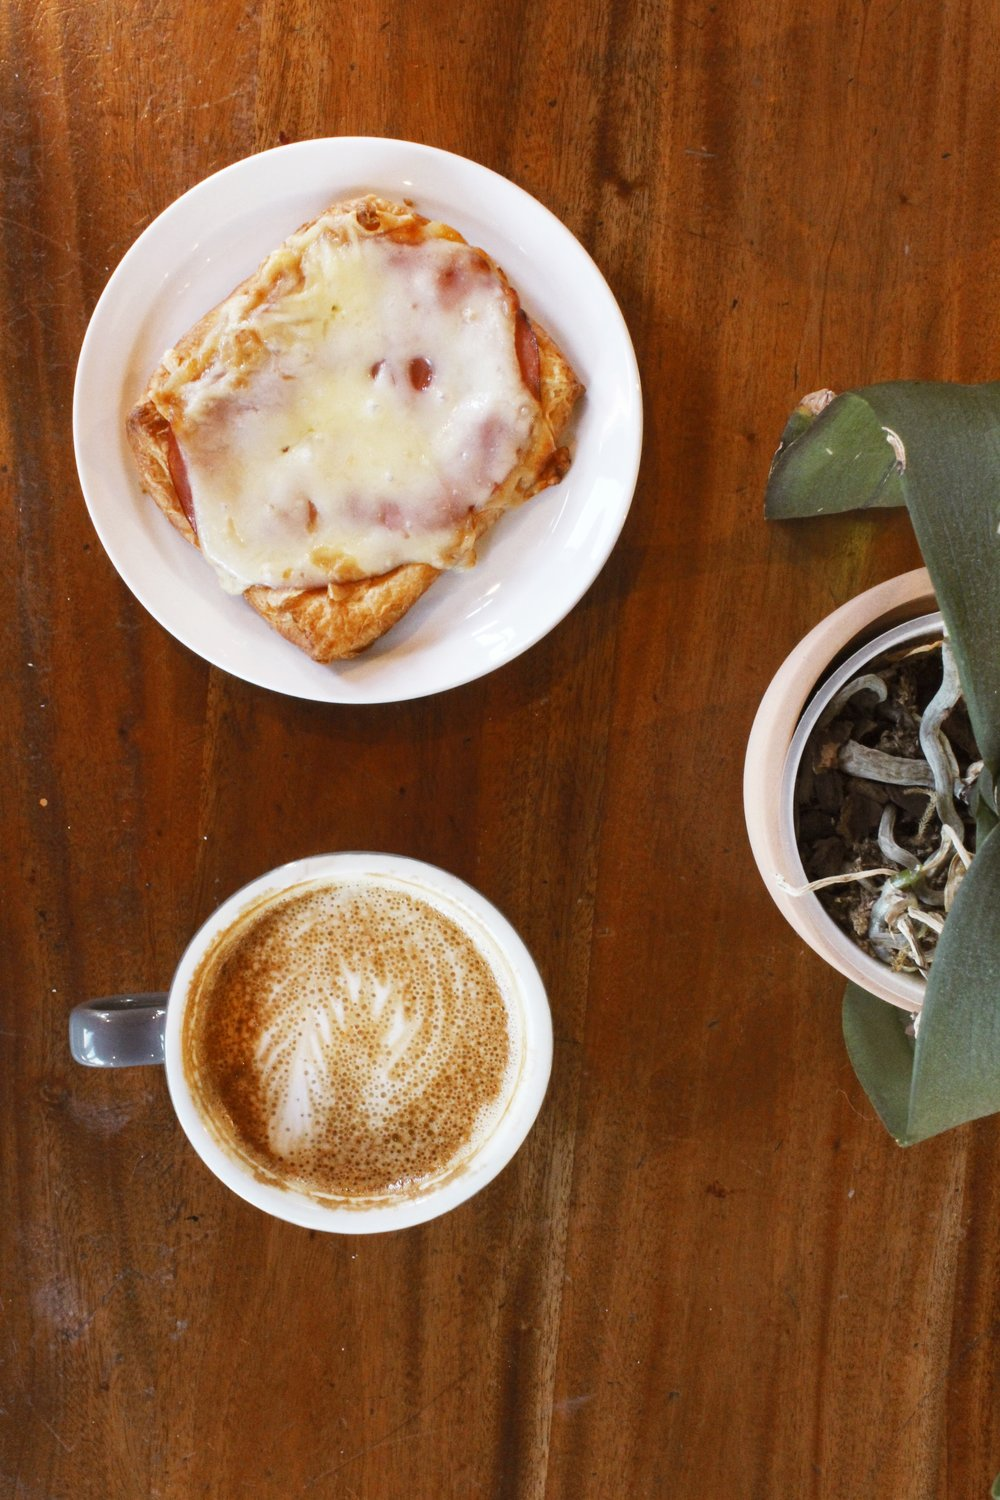 Ham and Cheese Croissant and Latte from Old Soul Coffee